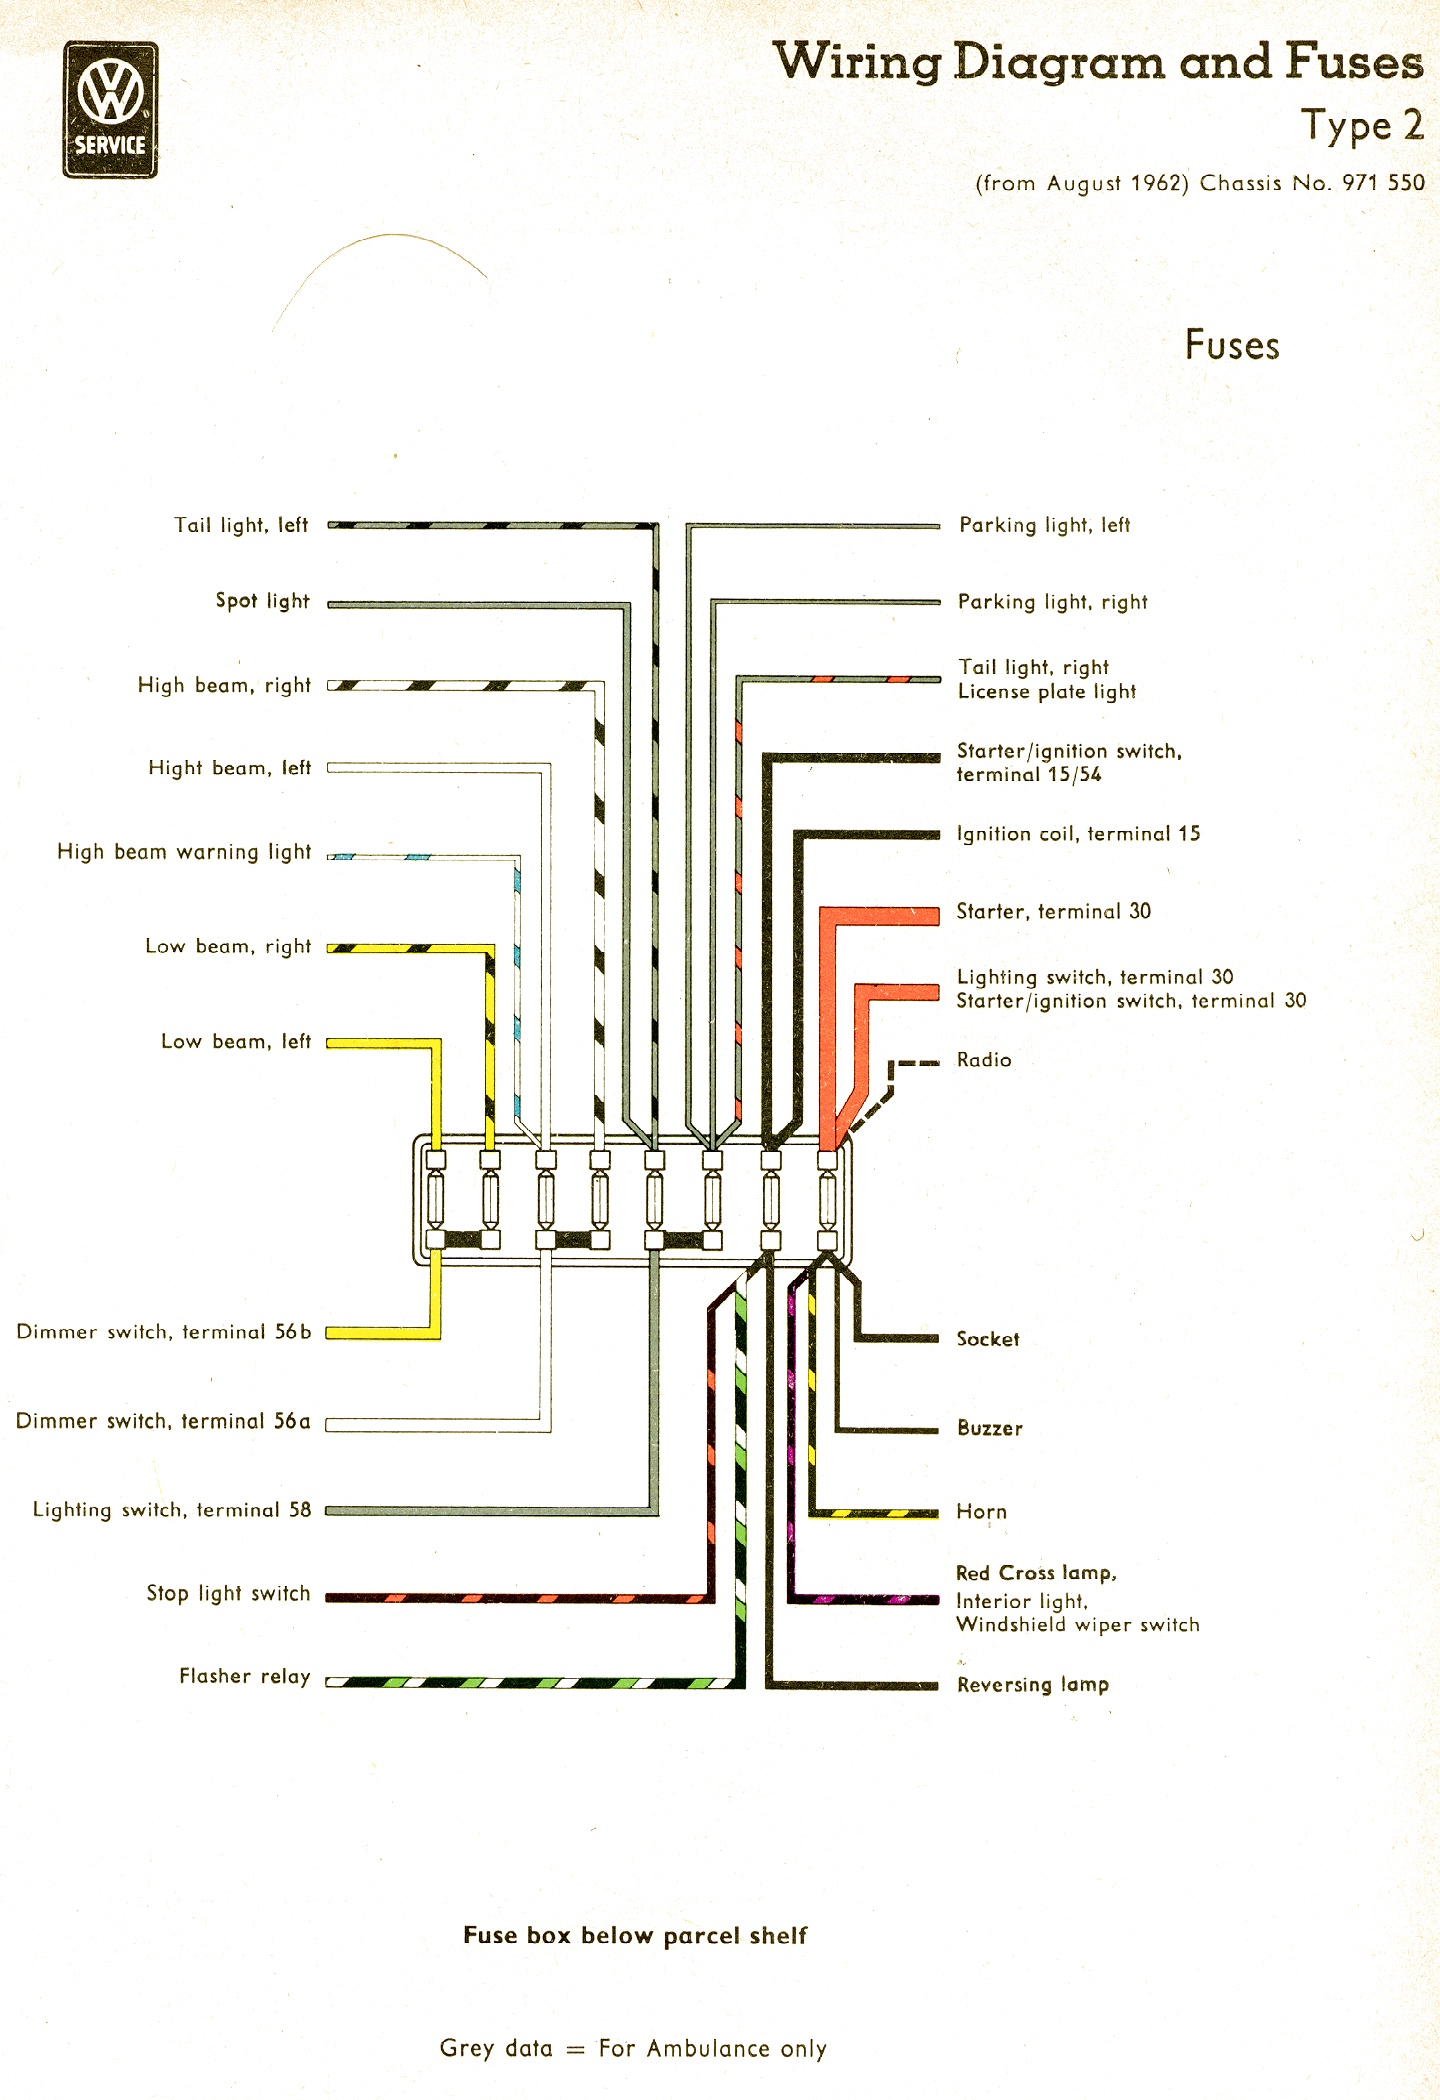 1973 super beetle fuse box diagram likewise 3 wire alternator wiring rh abetter pw